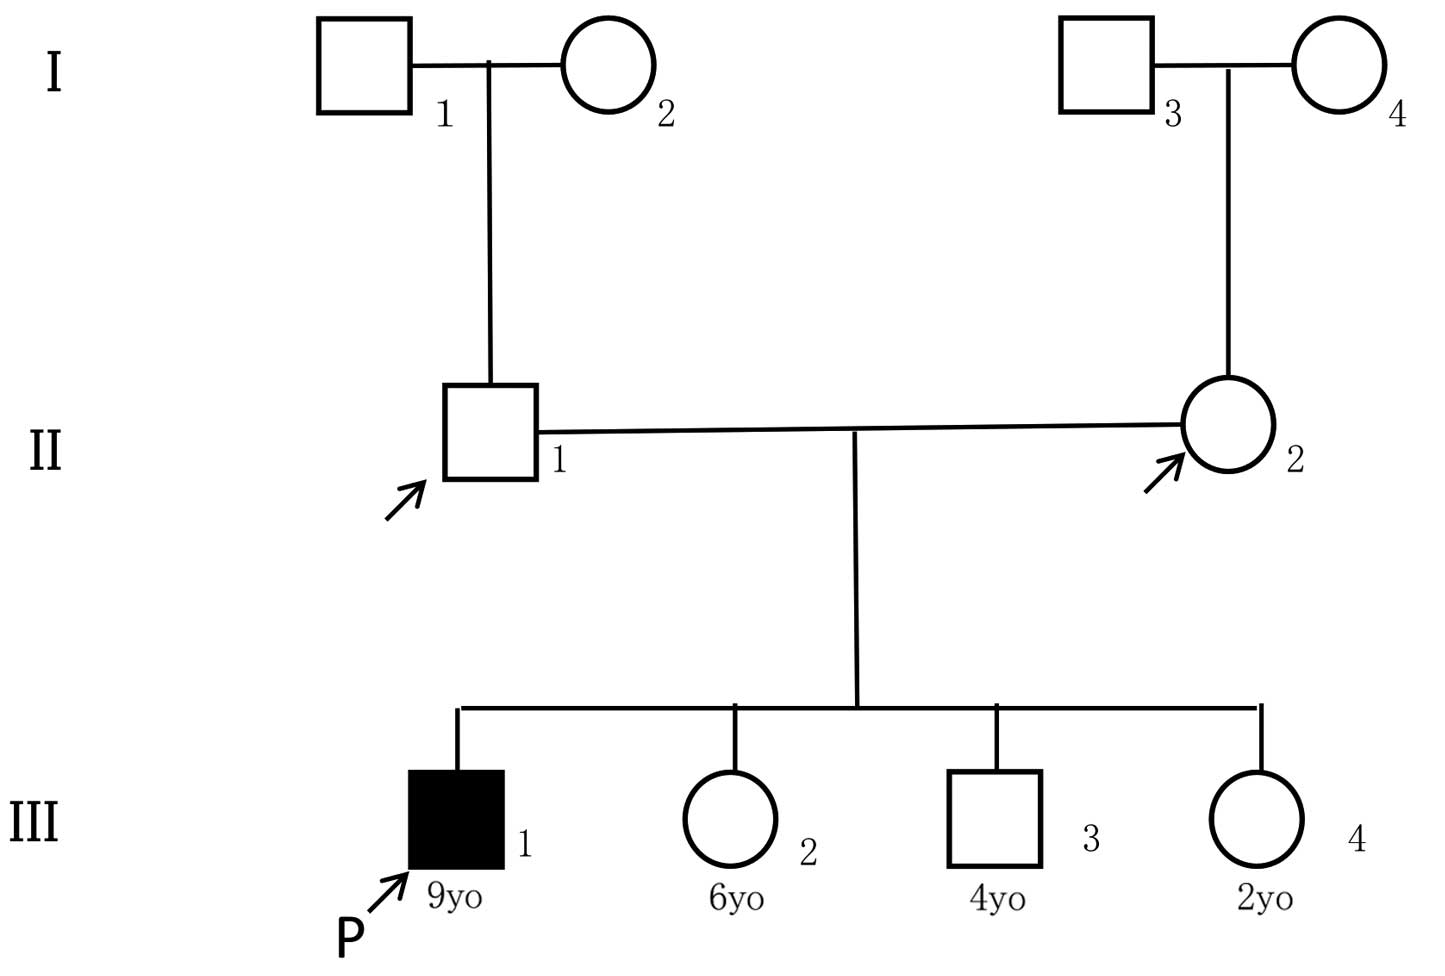 Whole Exome Sequencing Identification Of Novel Dnah5 Mutations In A Young Patient With Primary